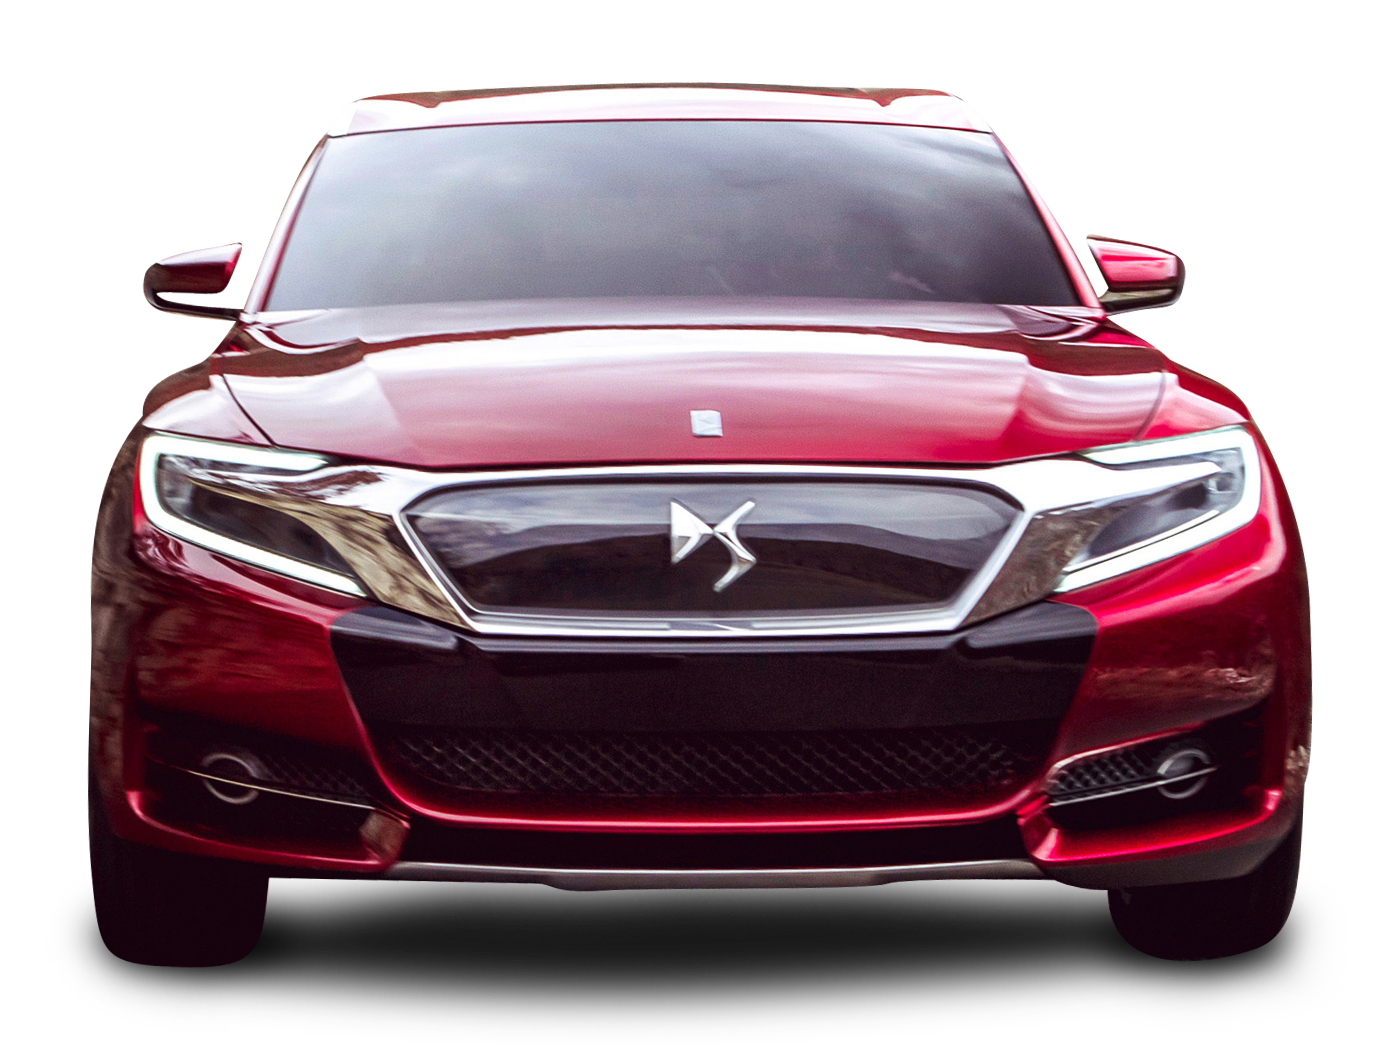 Front Of Car Png - Red Citroen DS Wild Rubis Front View Car PNG Image - PurePNG ...